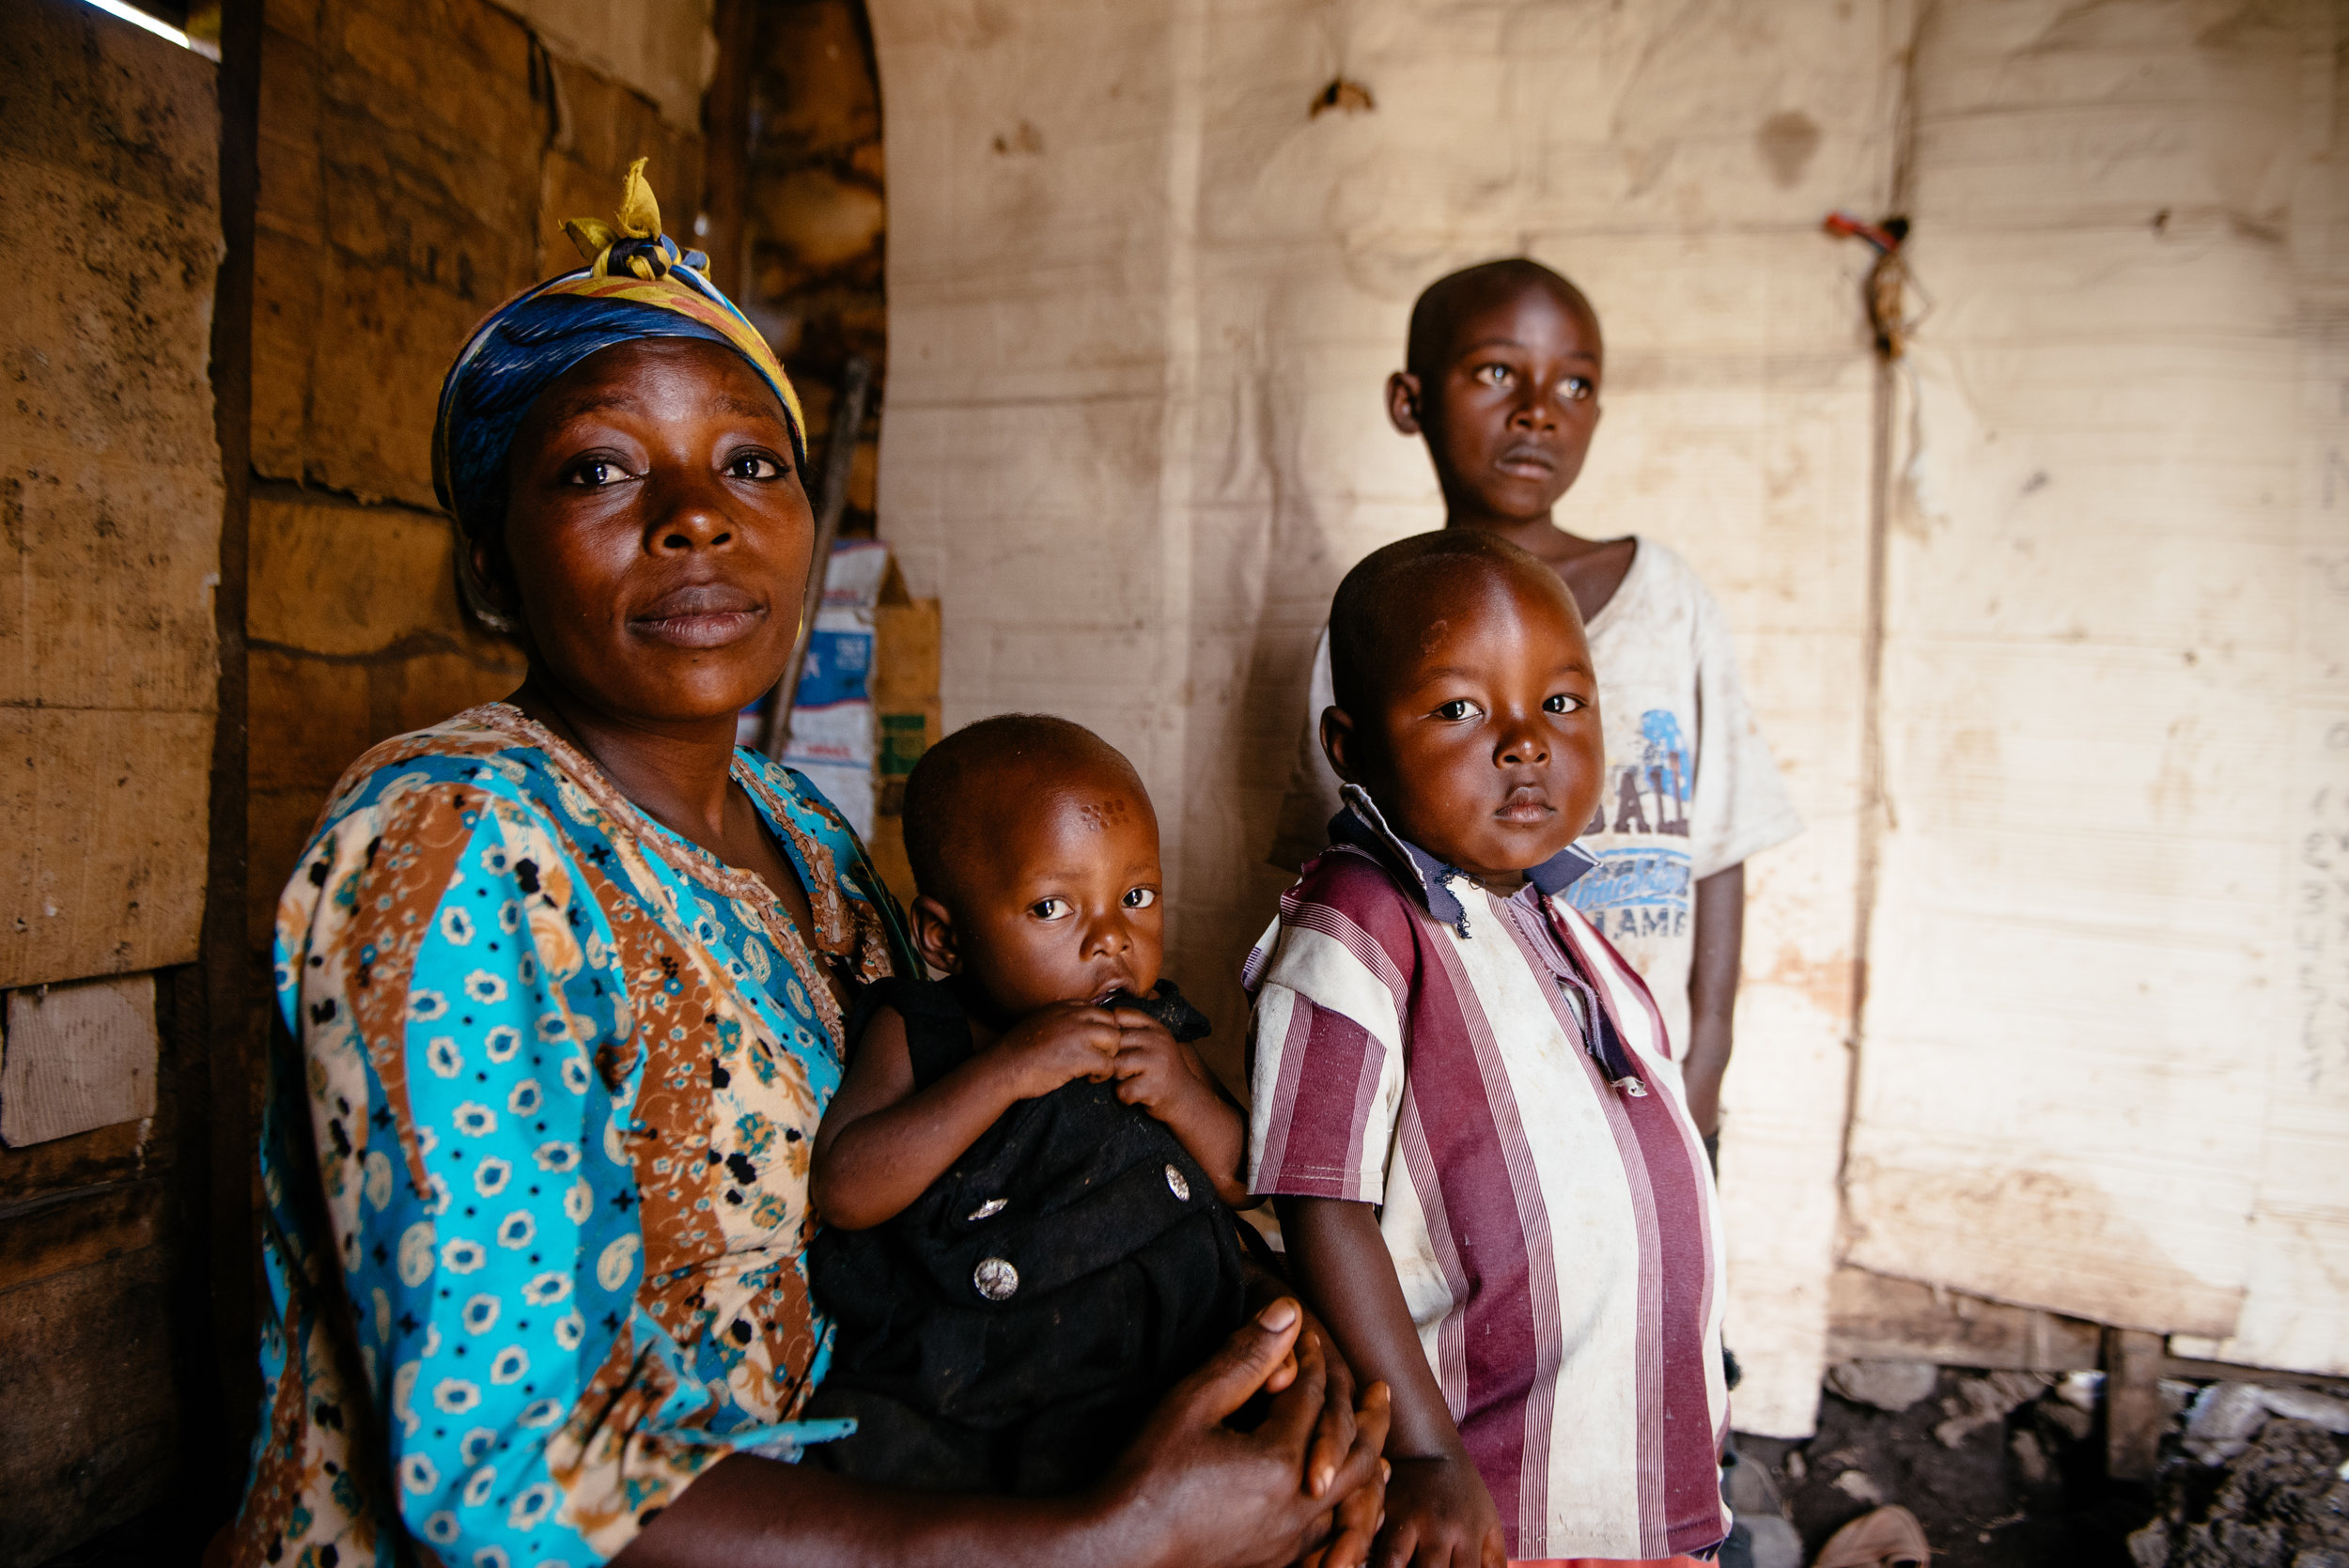 photo: Corinna Robbins for Mercy Corps, Goma, DRC. Furaha Faida, pictured here with three of her four children, fled her hometown with her children after soldiers looted their home and subjected her to violent sexual assault.